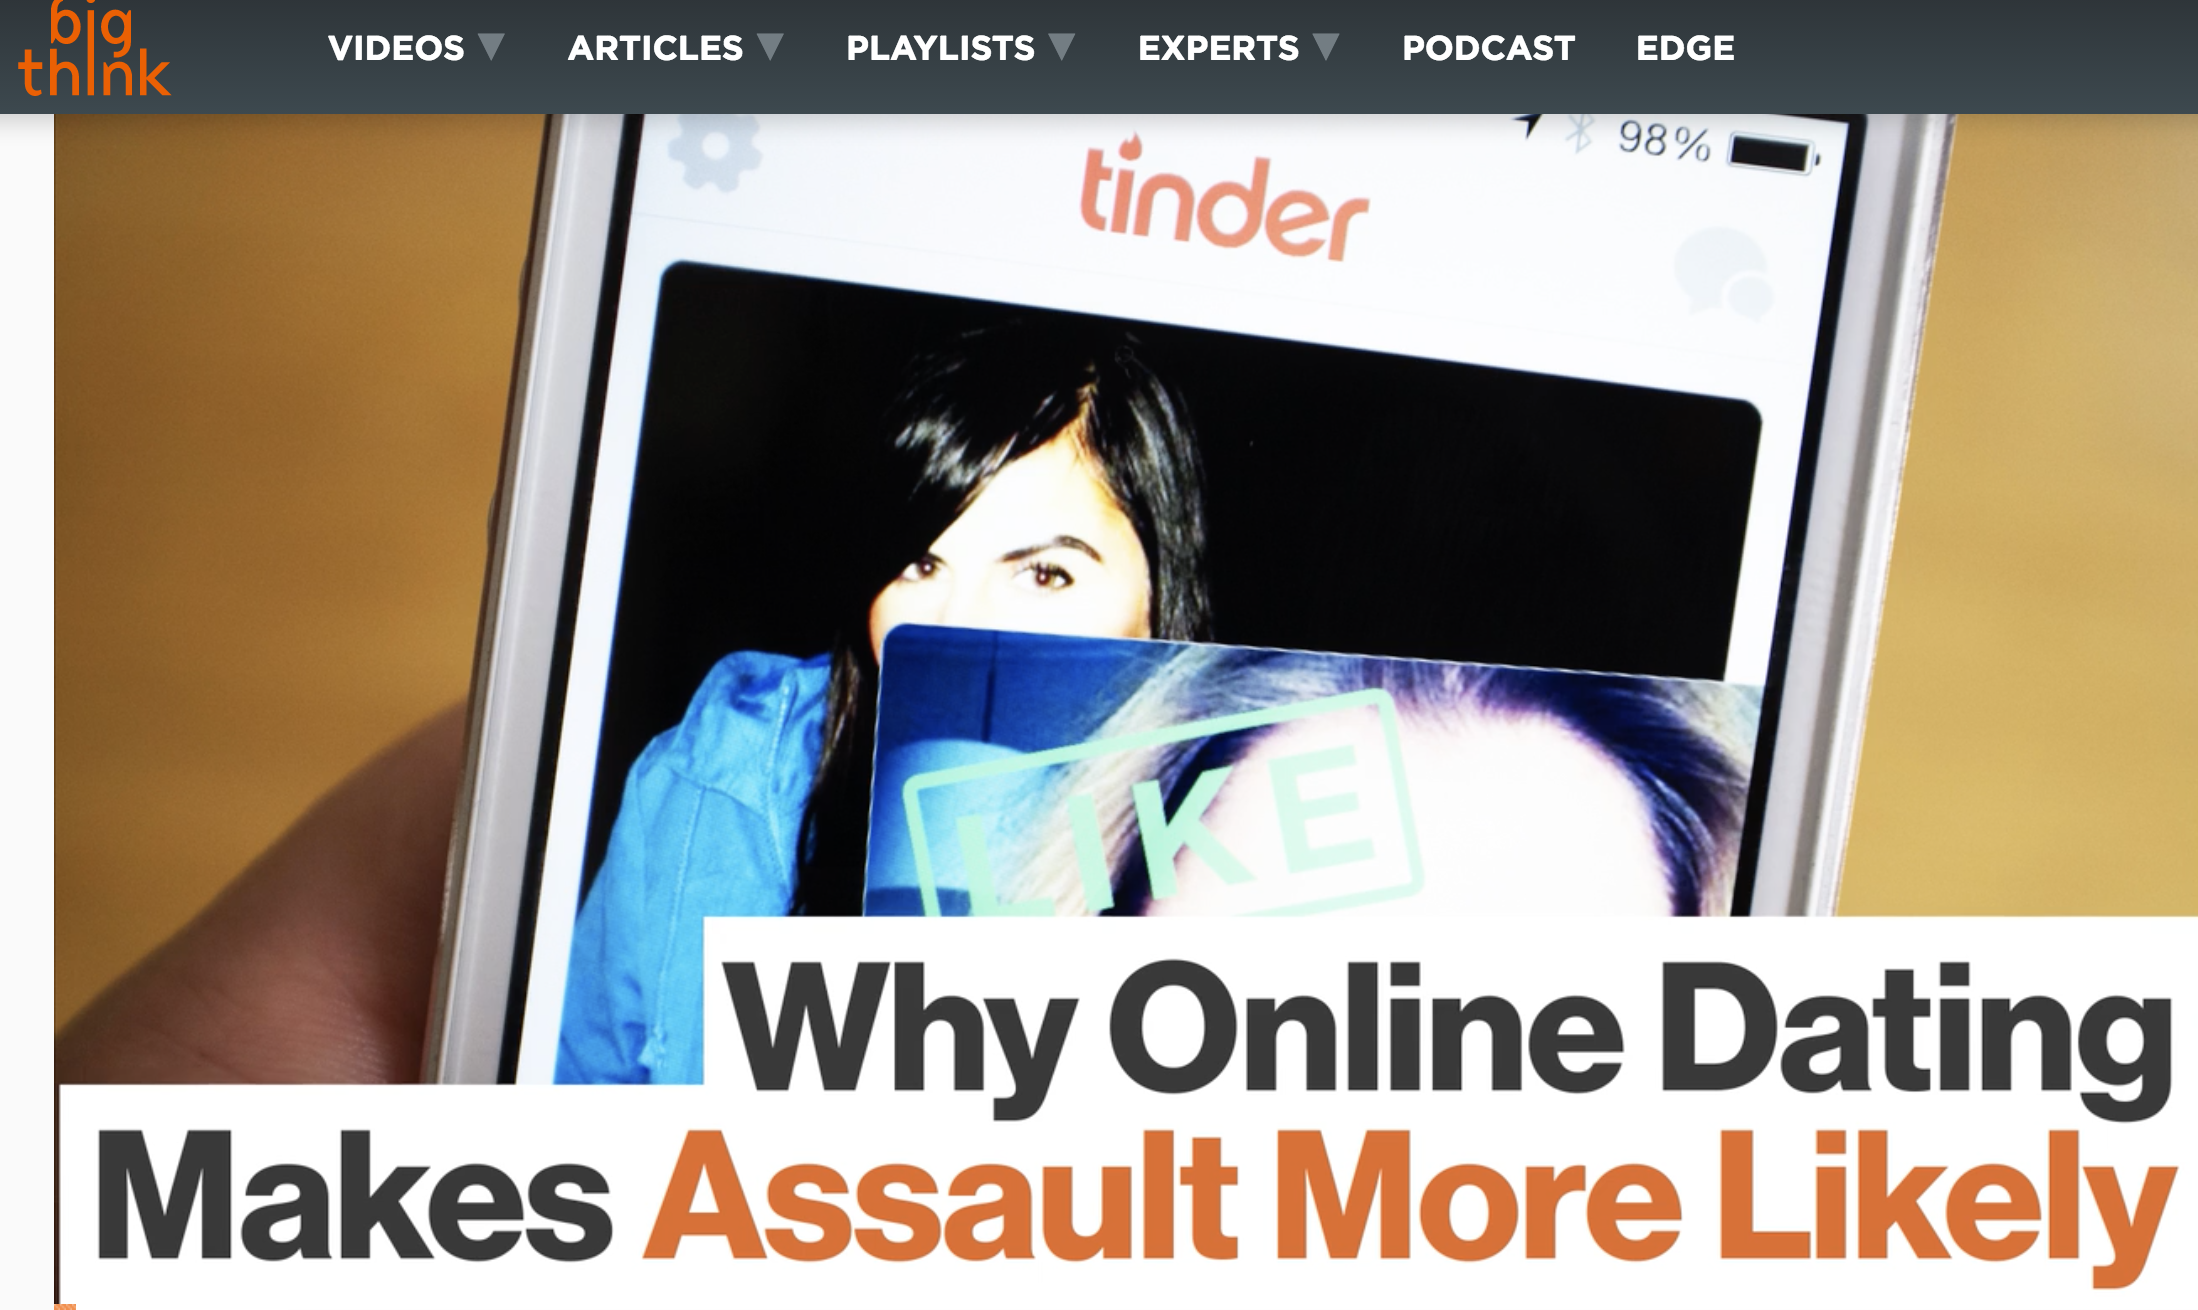 Dr Mary Aiken:How Online Dating Changed the Psychology of Sexual Intimacy